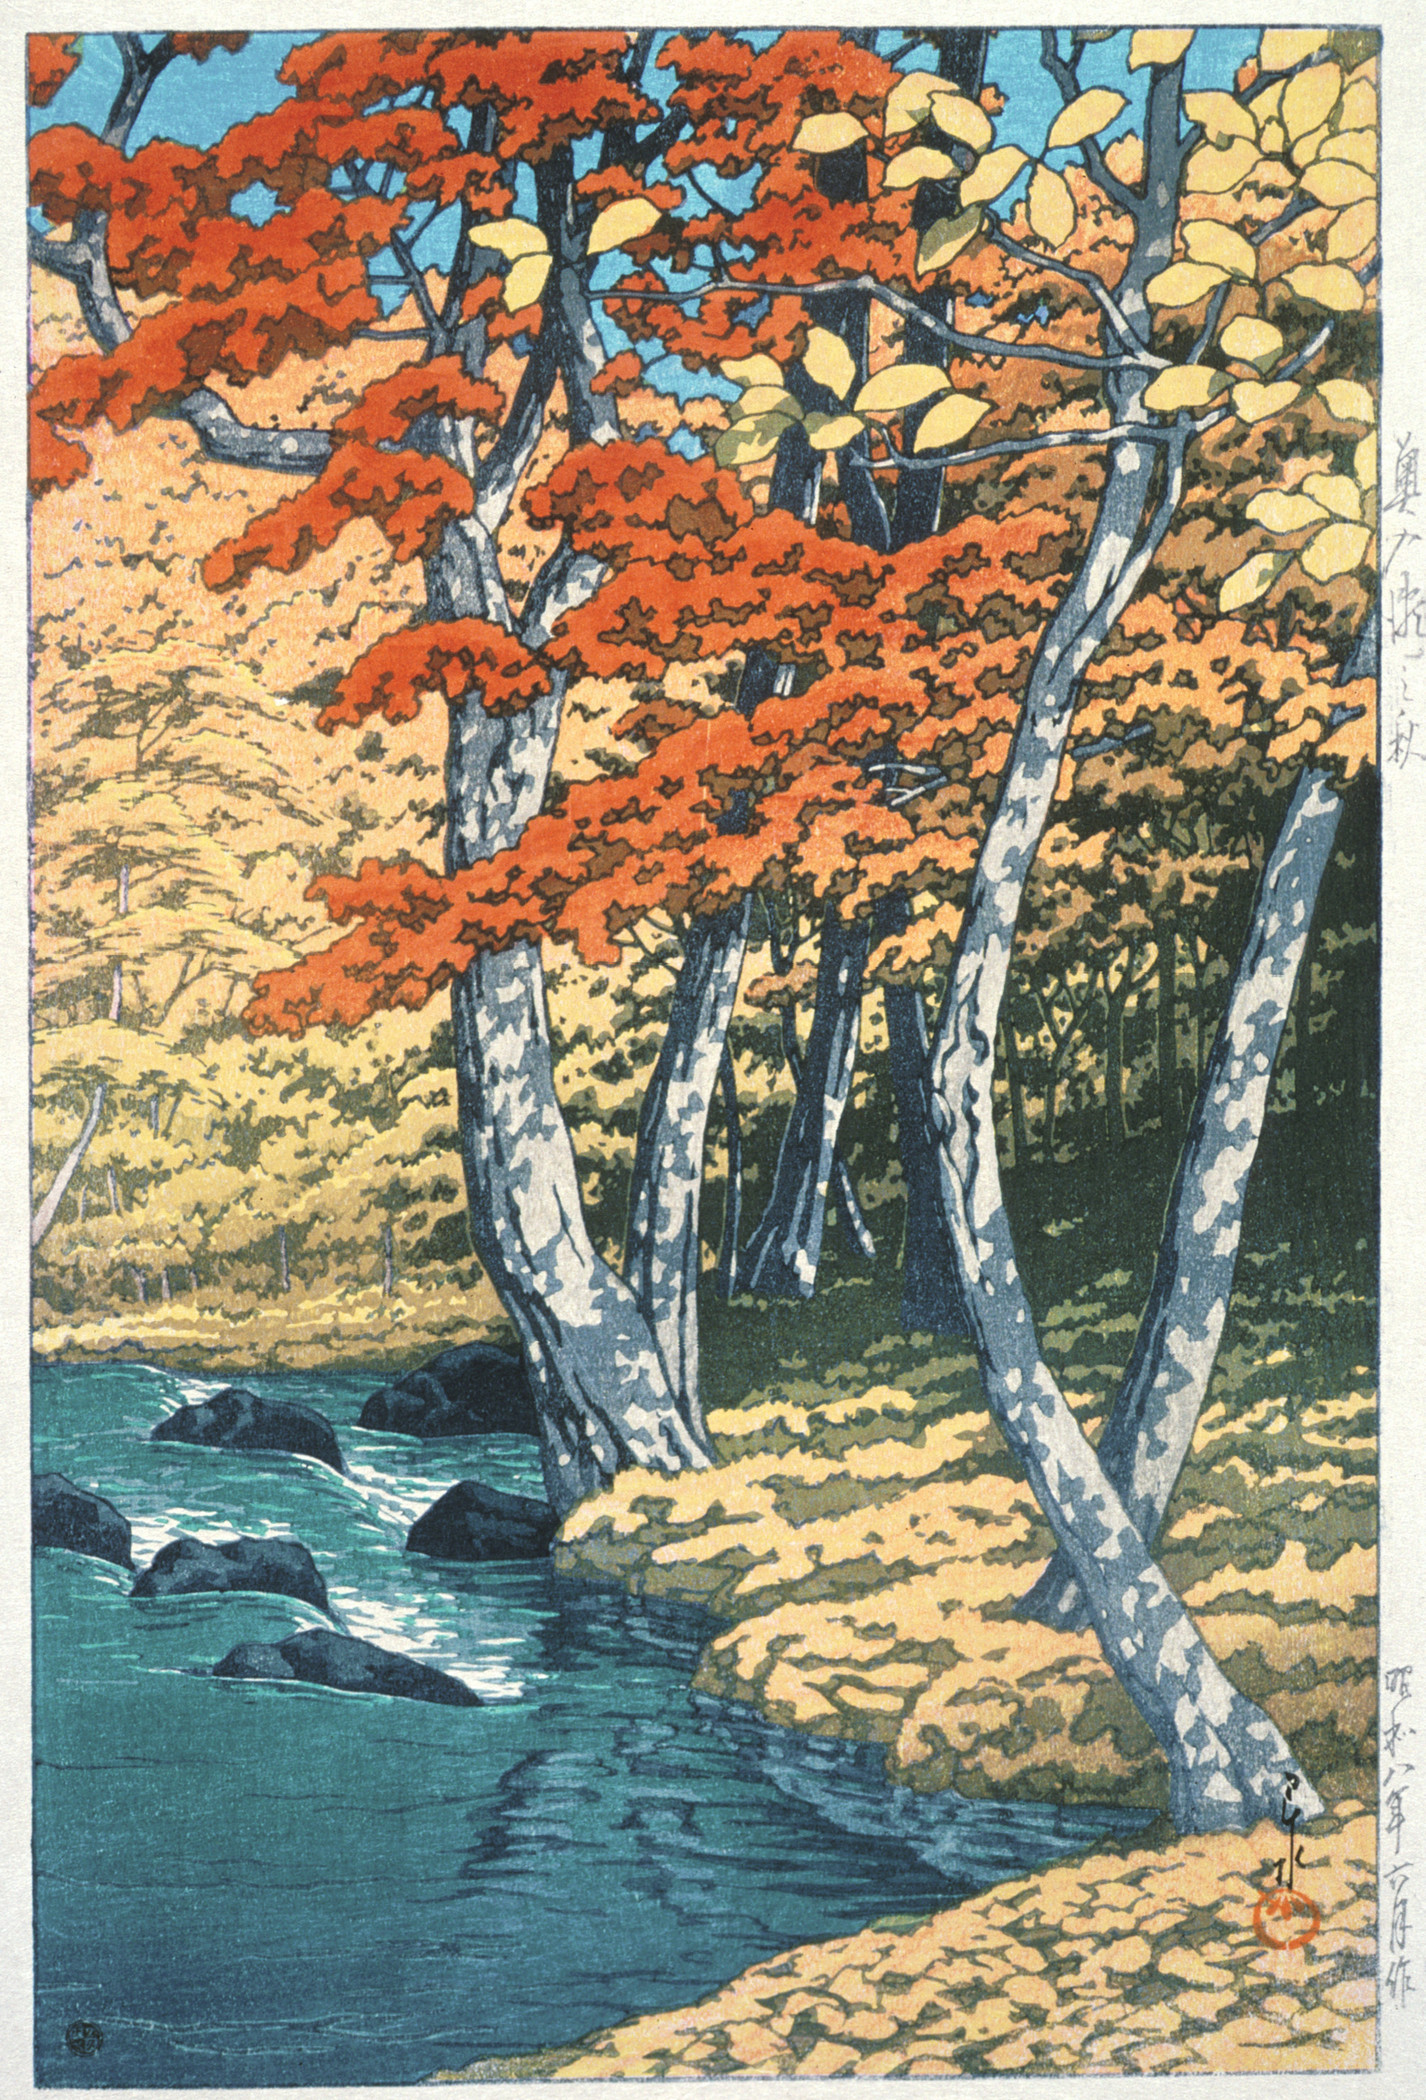 Kawase Hasui, Autumn in Oirase, June, 1933, Los Angeles County Museum of Art, gift of Mr. and Mrs. Felix Juda, photo © Museum Associates/LACMA